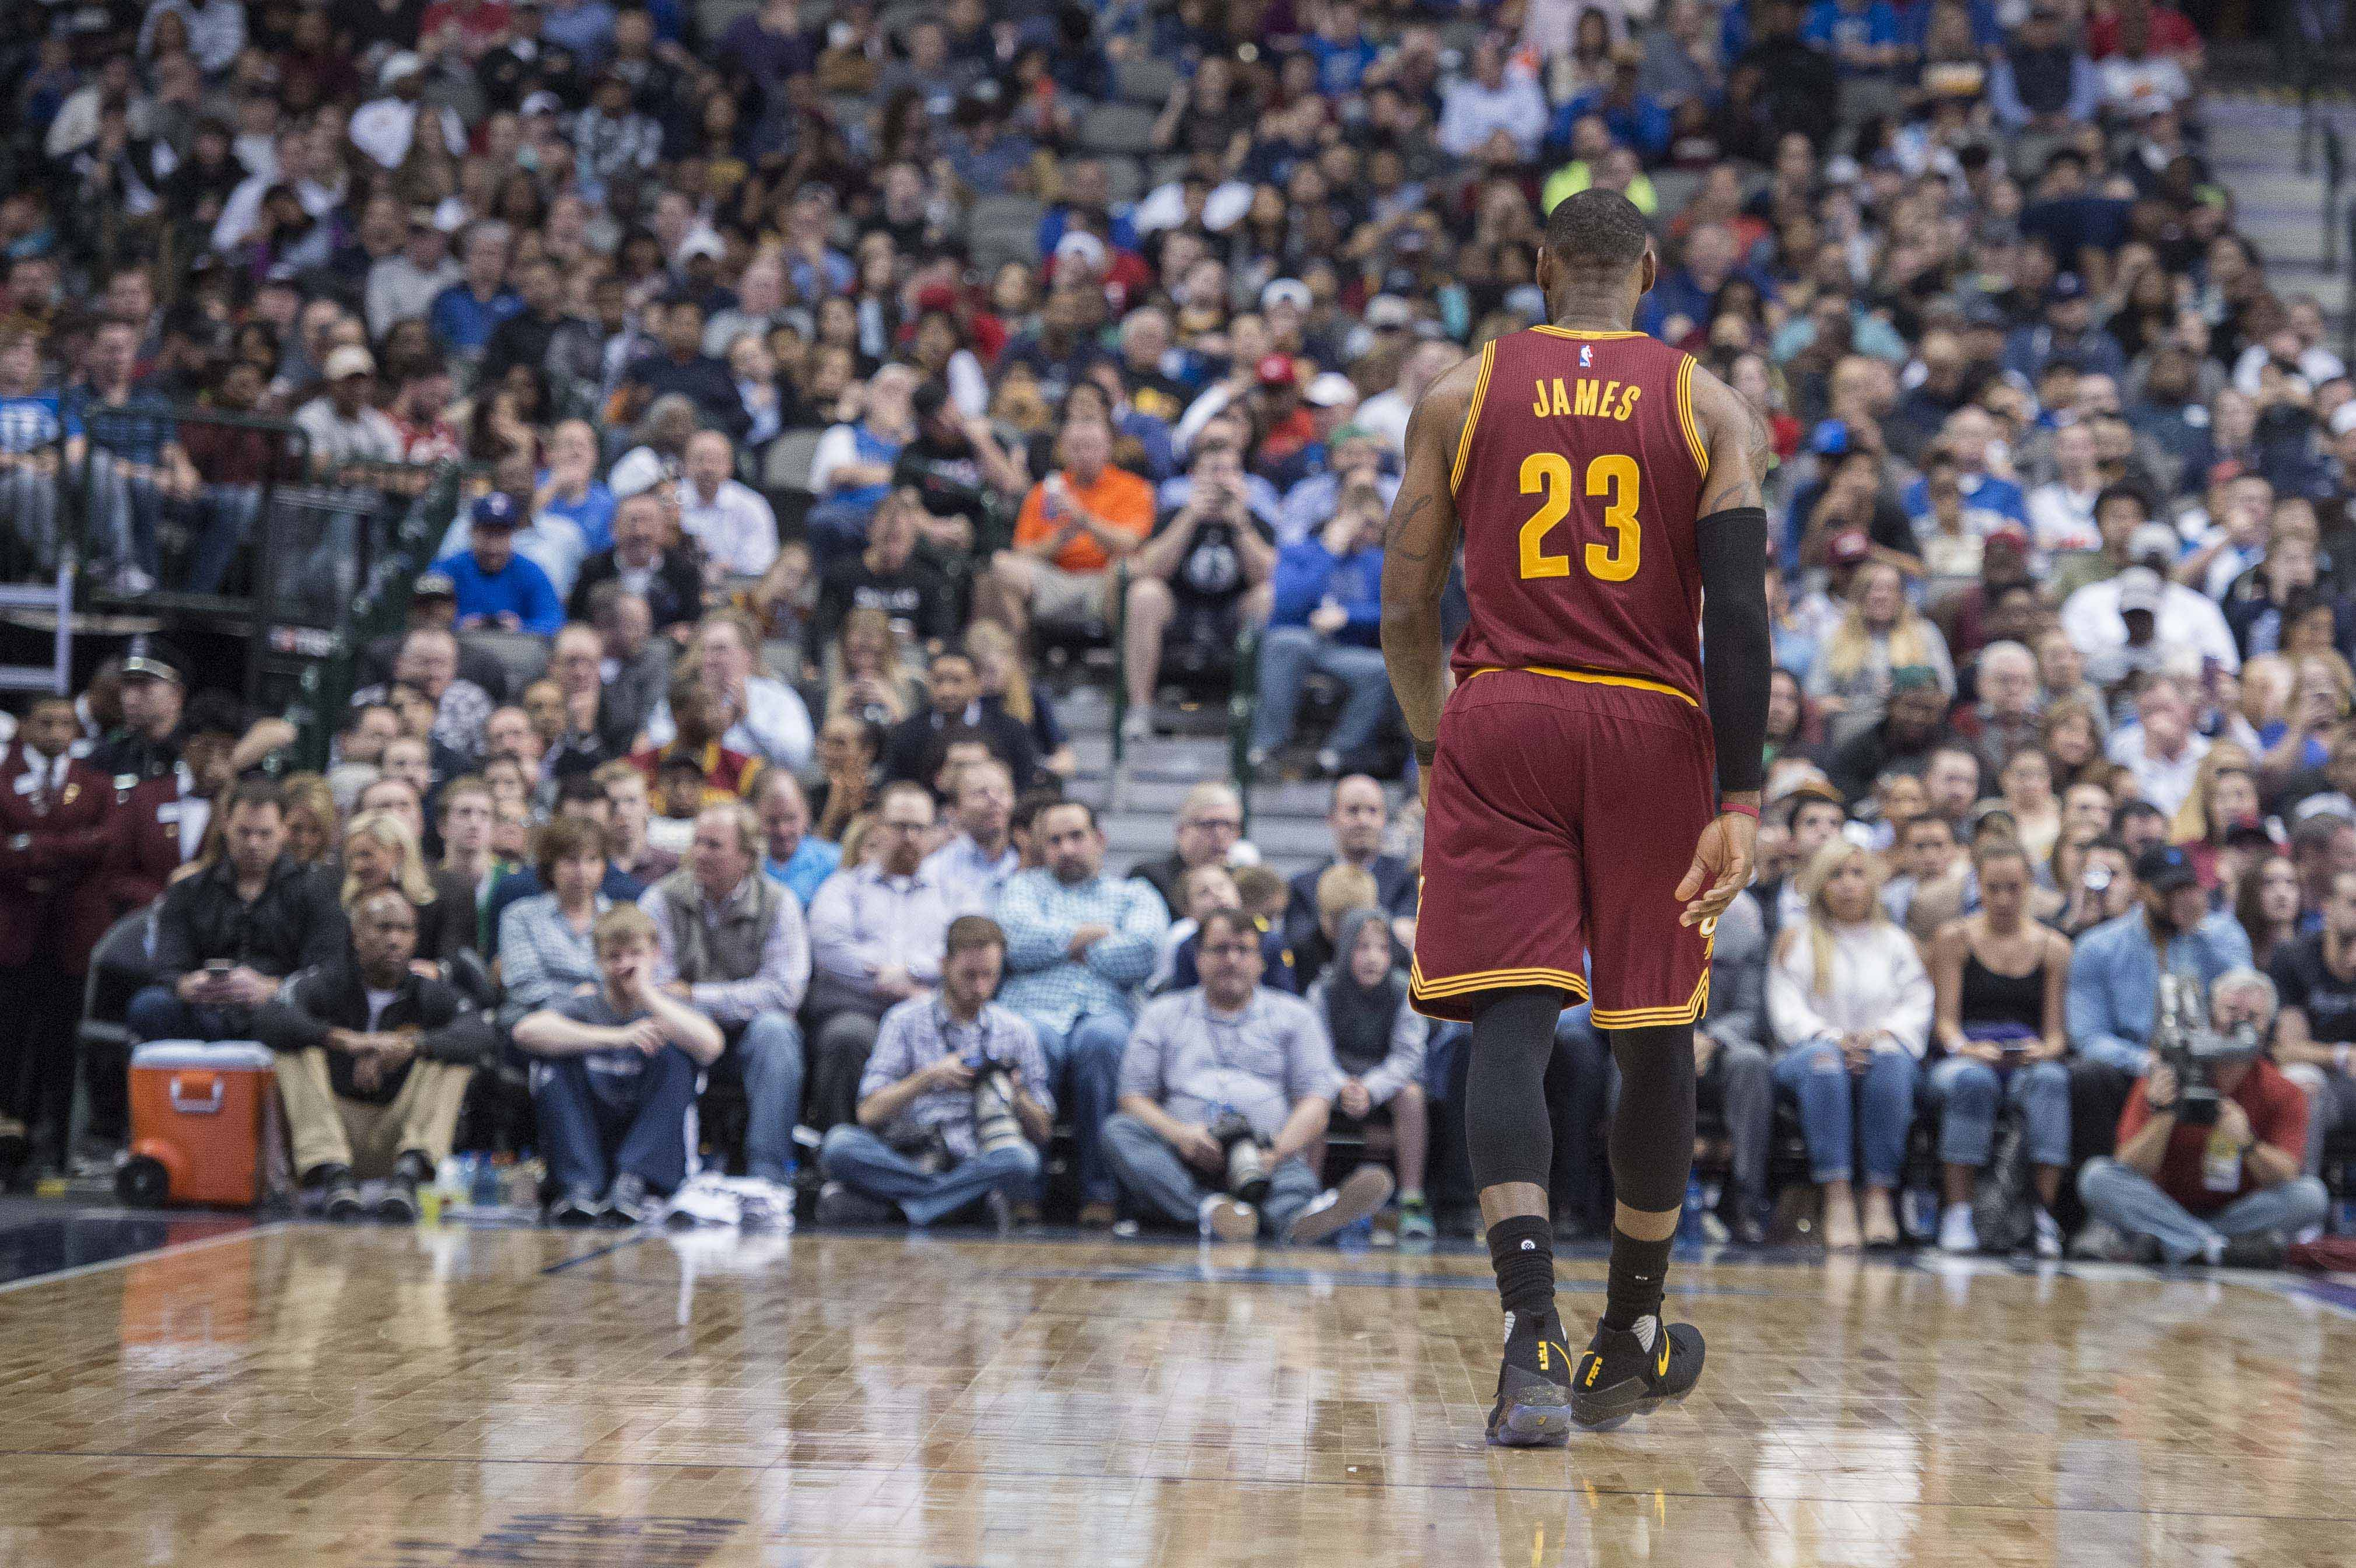 Cleveland Cavaliers: Cleveland Cavaliers: LeBron James' Tirade Could Fuel Team